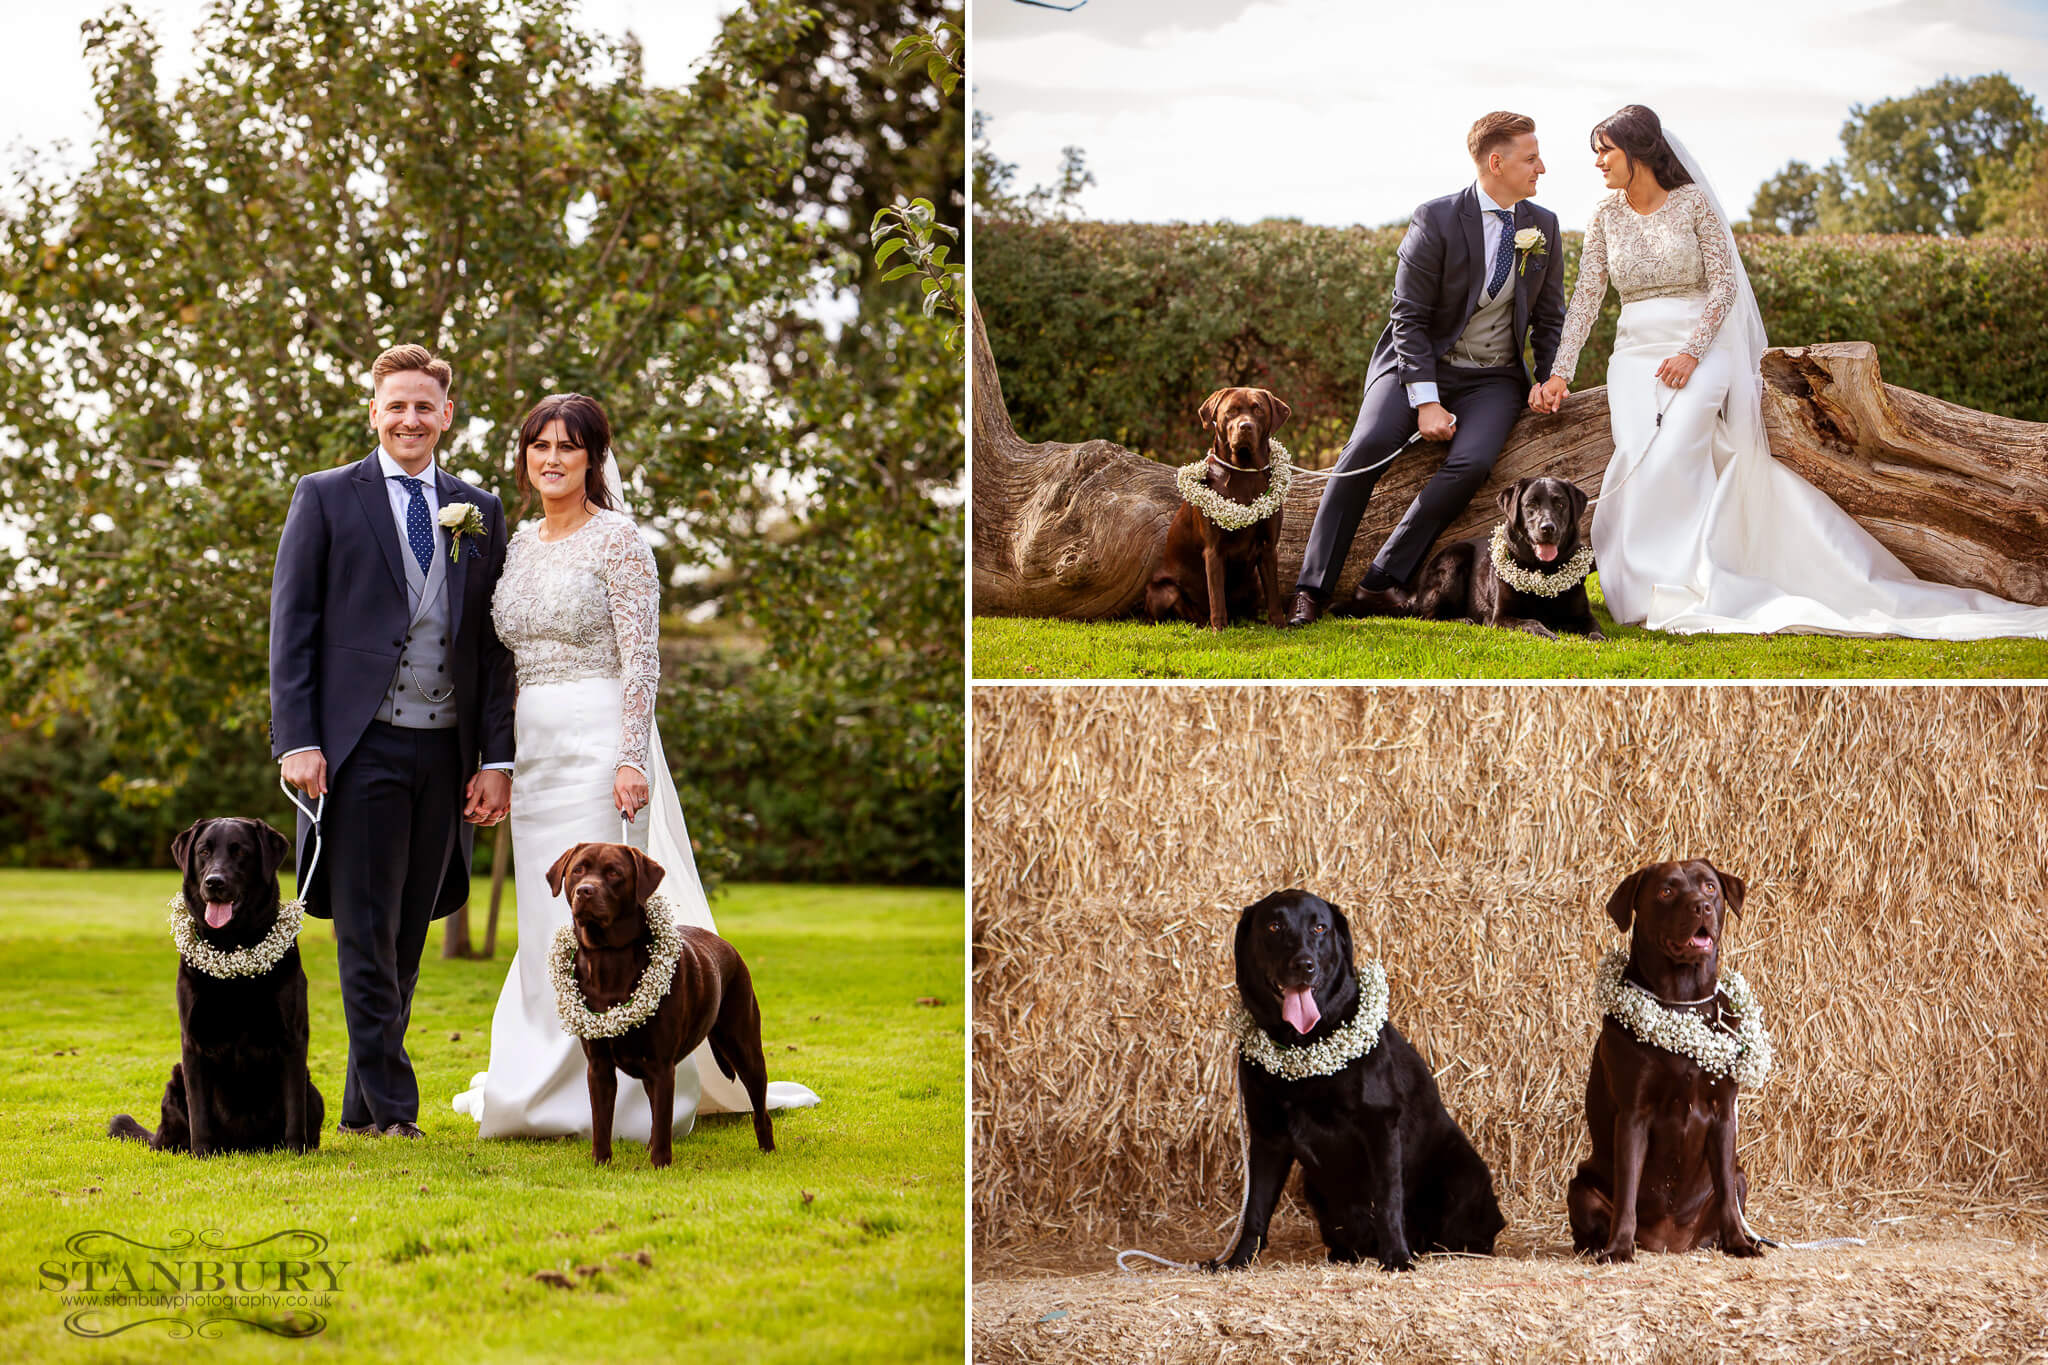 owen-house-wedding-barn-bride-groom-dogs-photography-stanbury